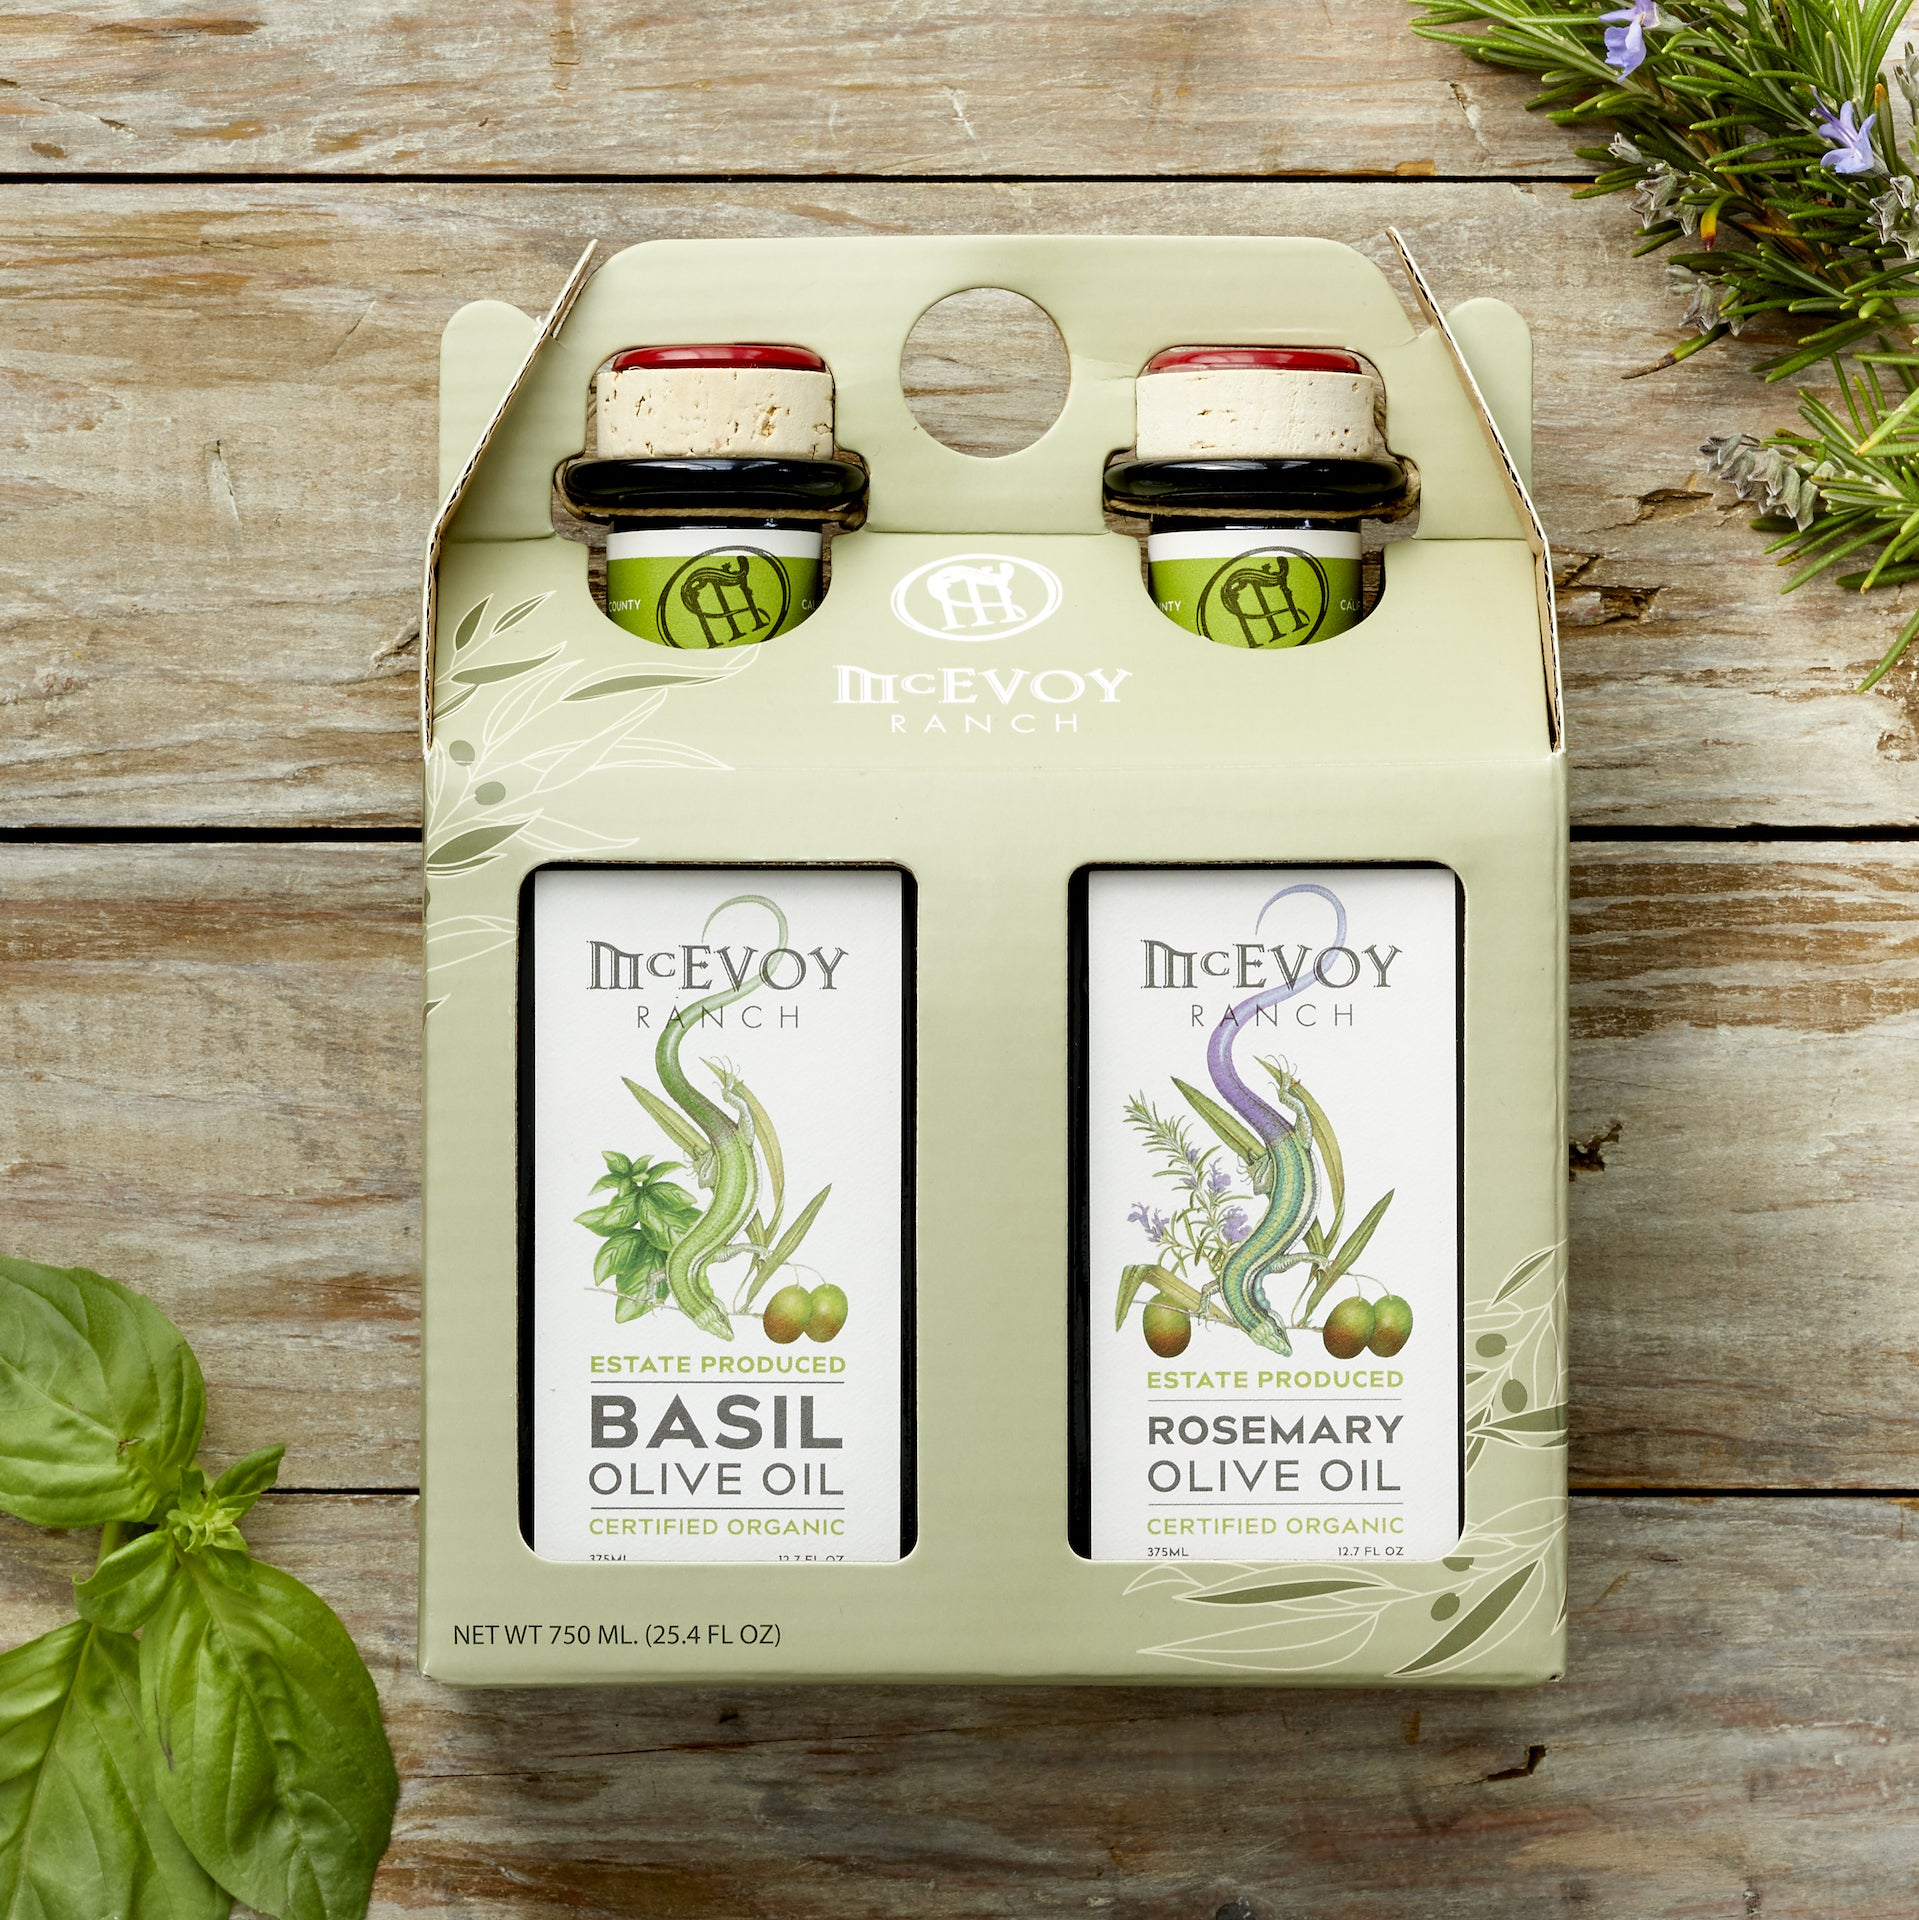 Gift Set Olive Oil Rosemary/Basil 2019H 375ML